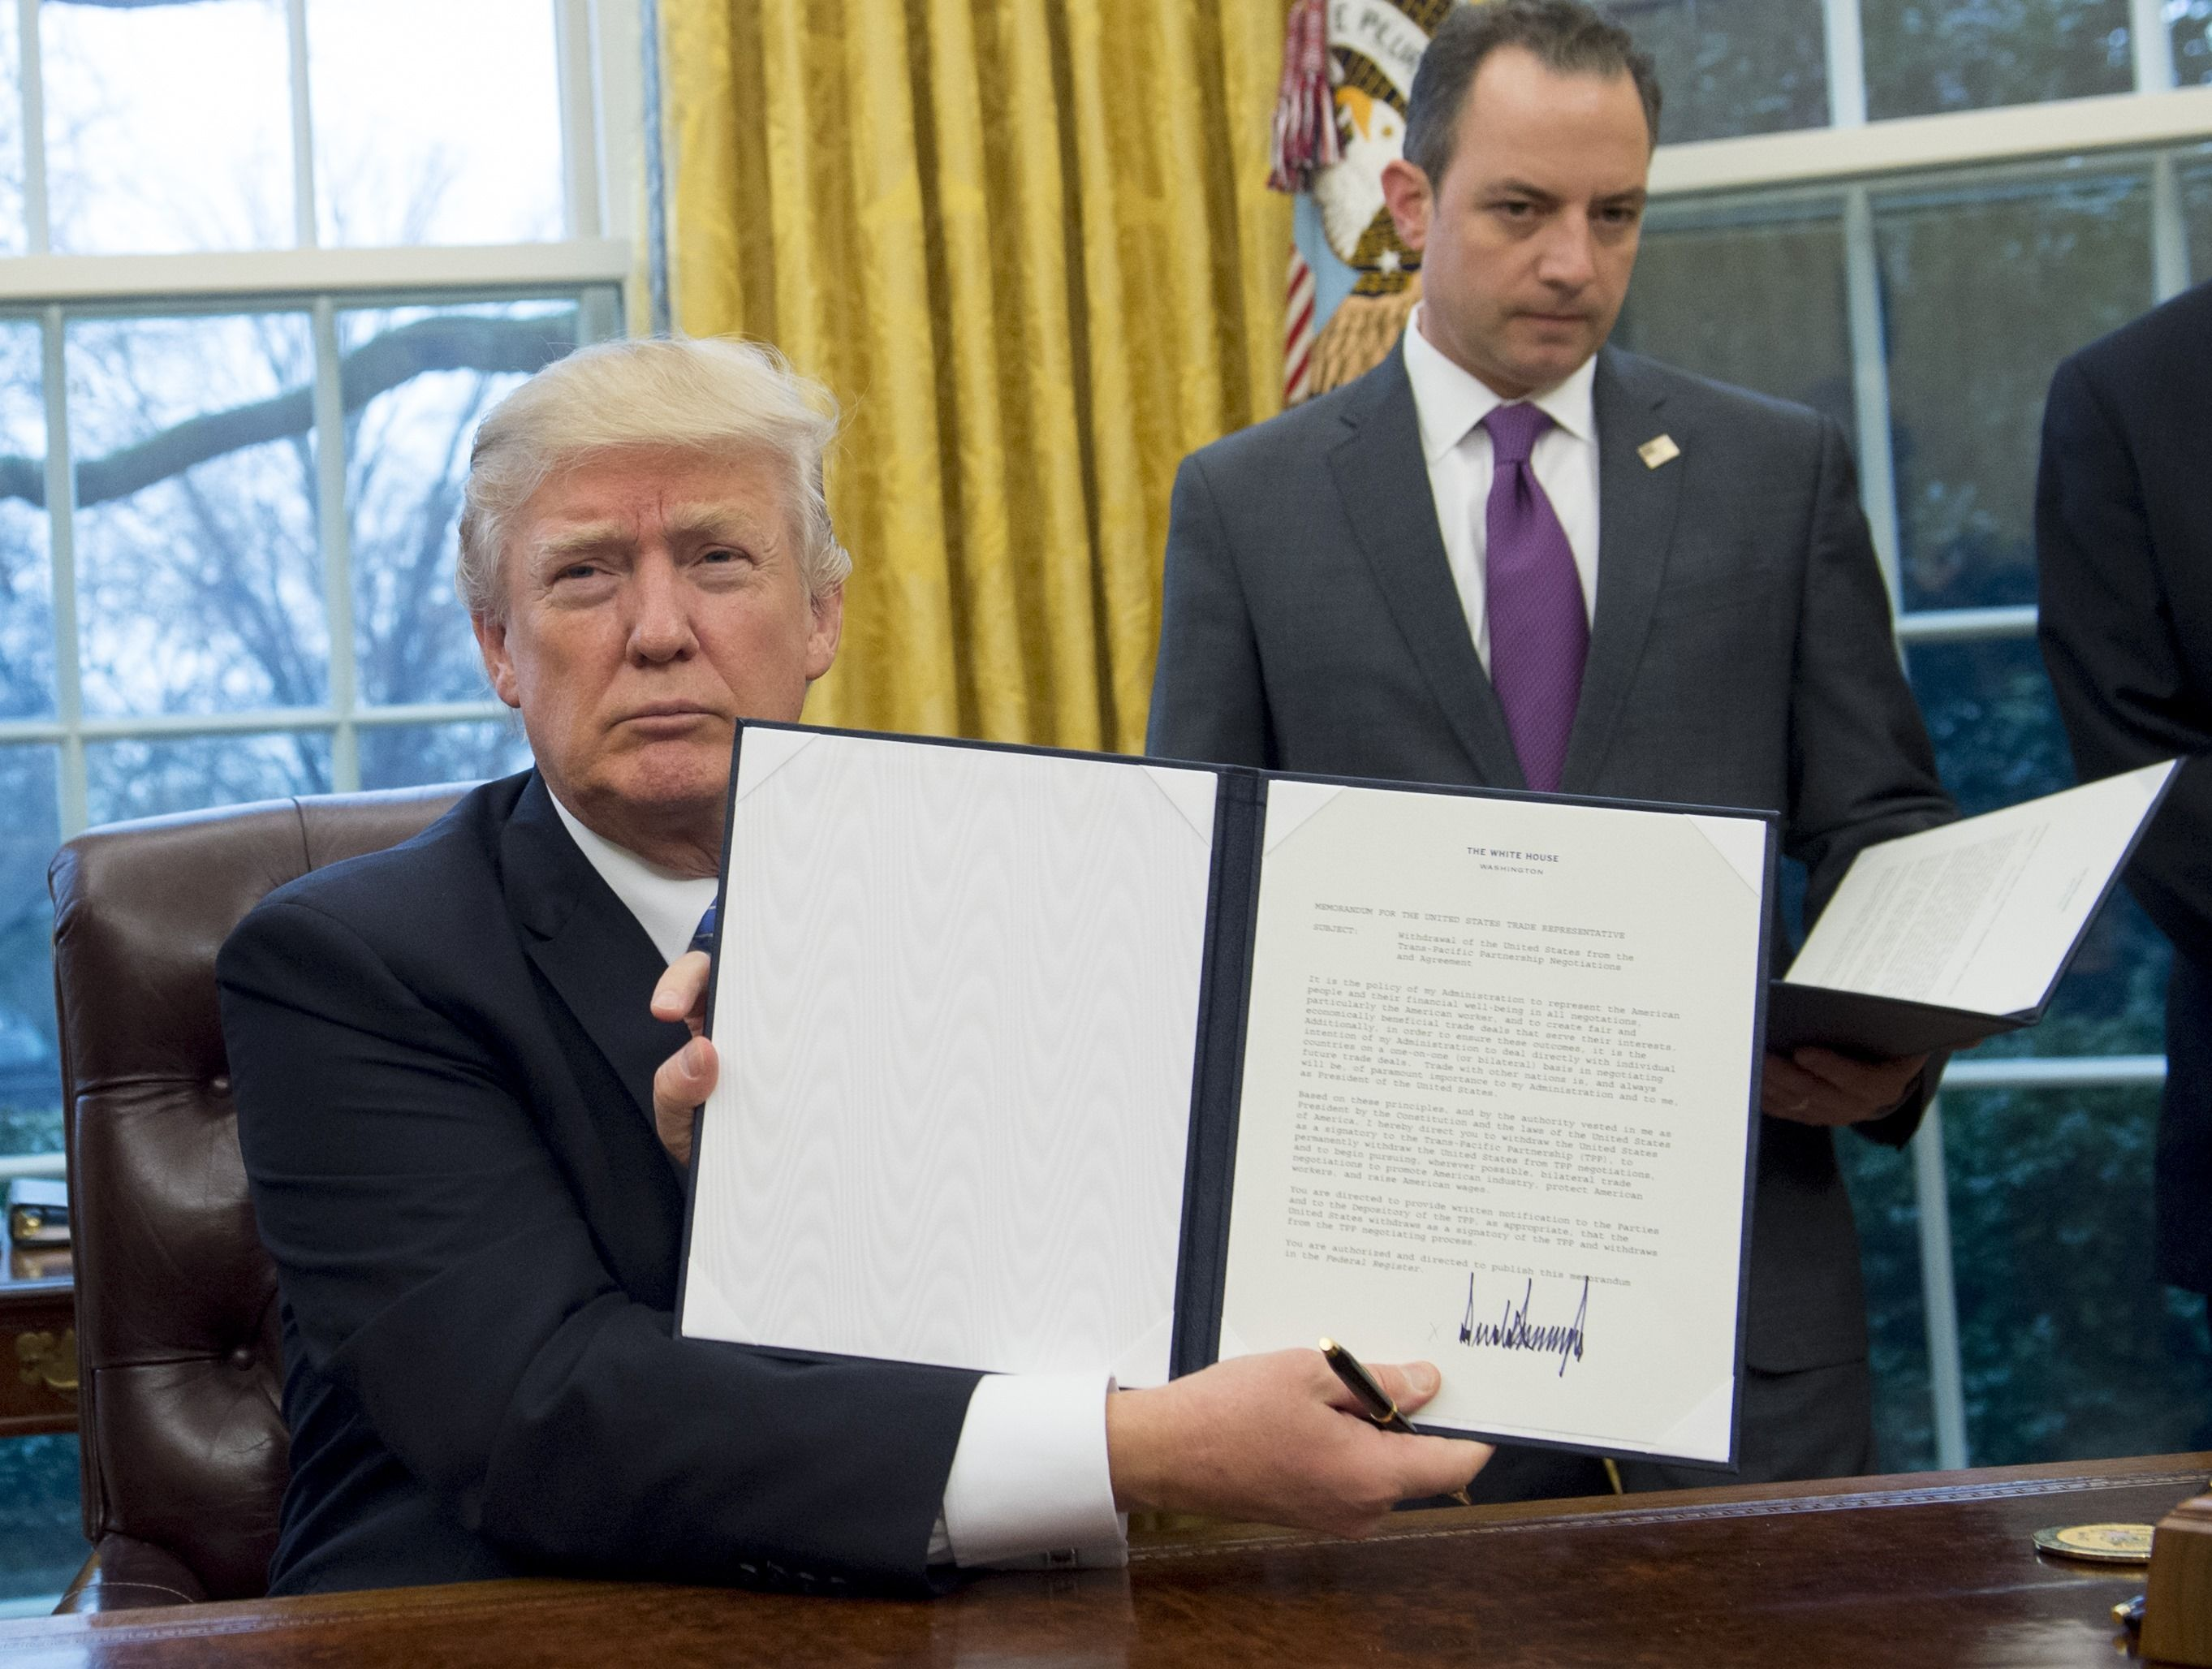 Fedex Jobs Cool Psbattle Trump Signs Memo To Leave Tpp Trade Pact  Funny Photoshop .